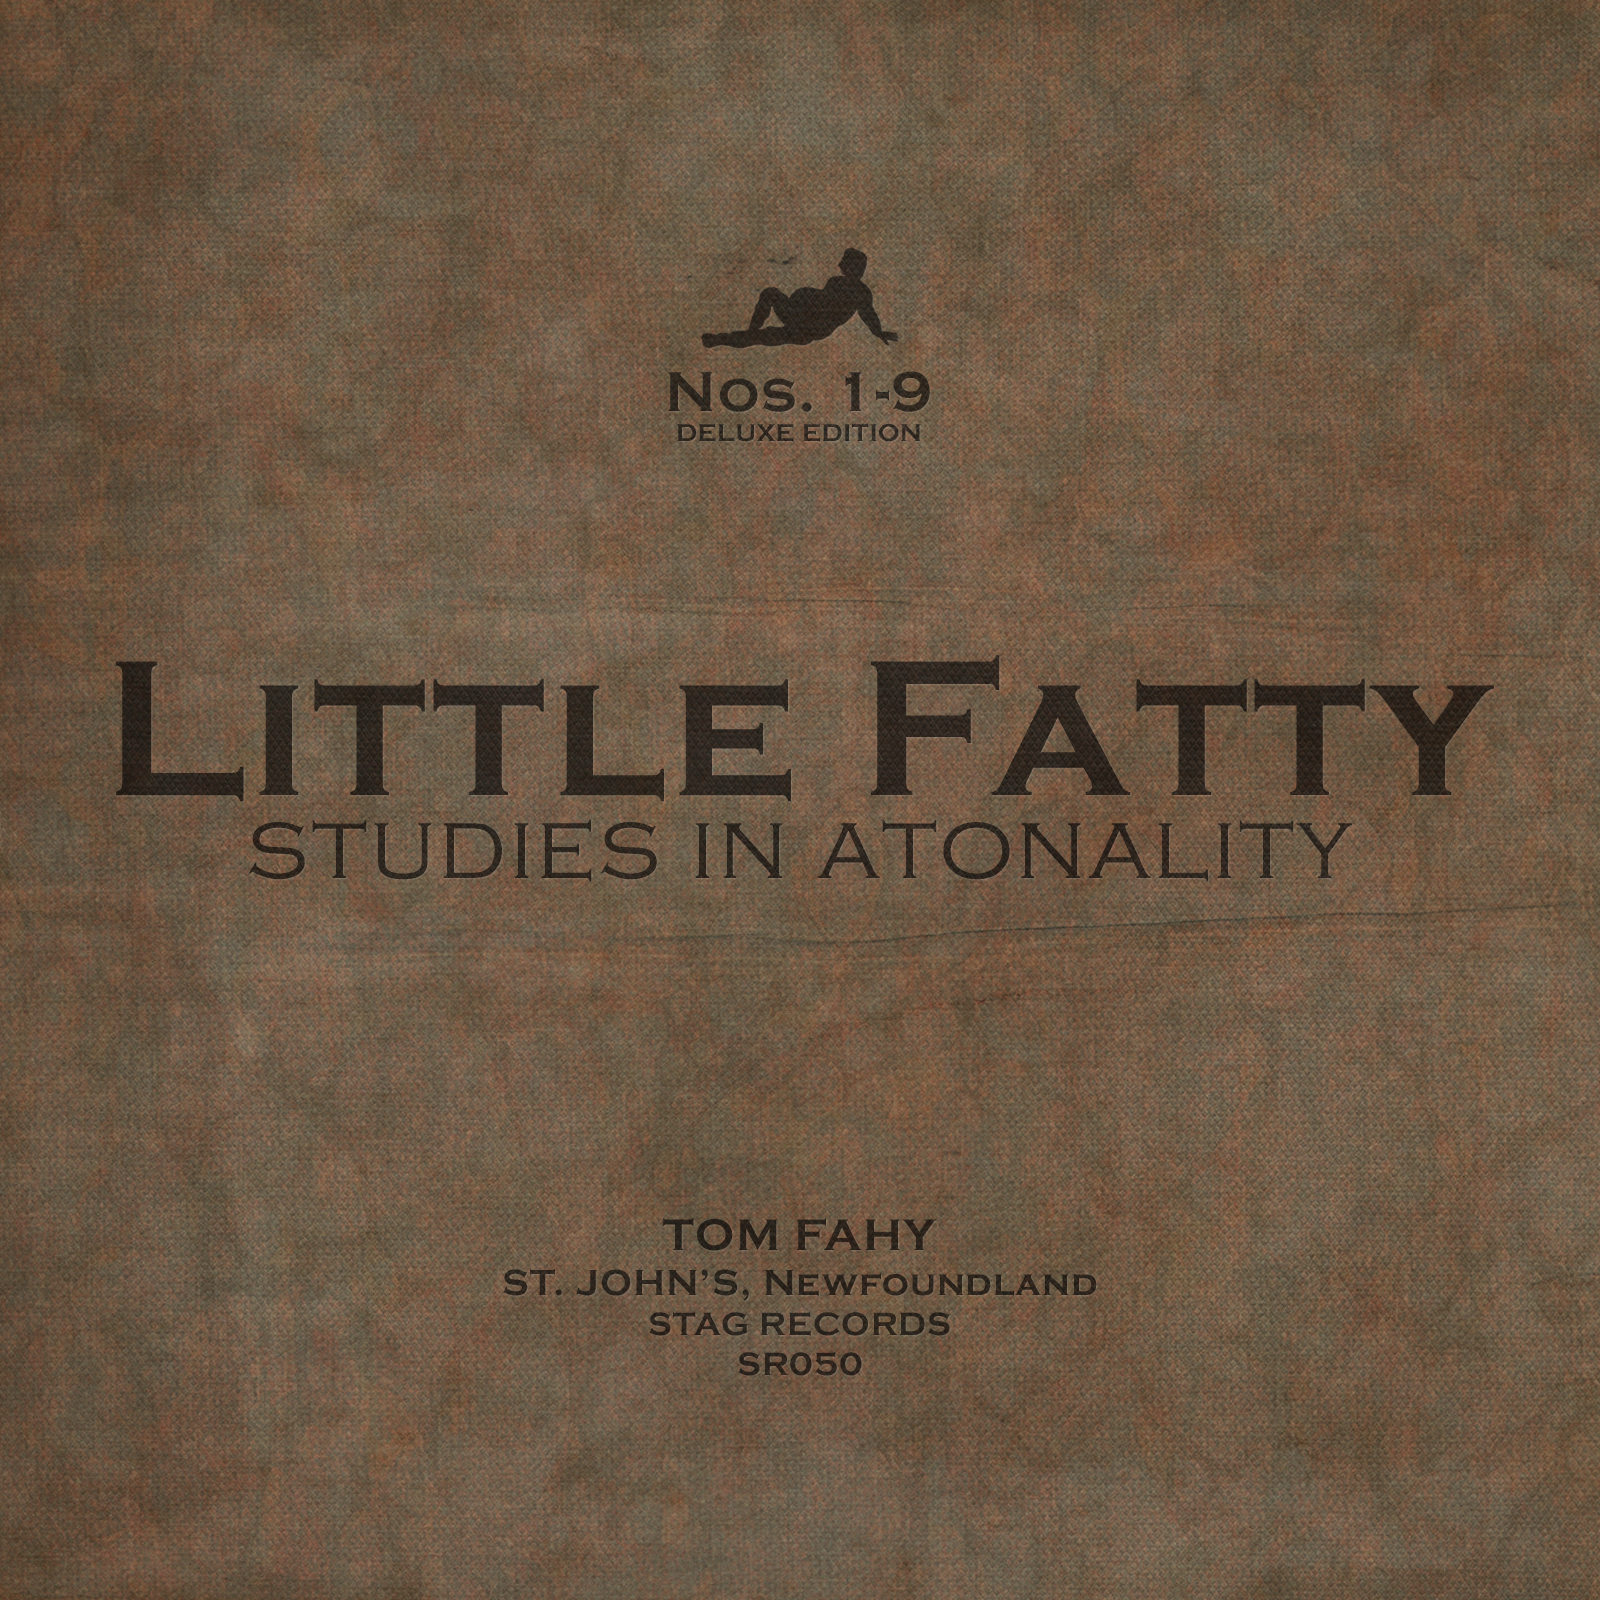 Little Fatty: Studies in Atonality by Tom Fahy